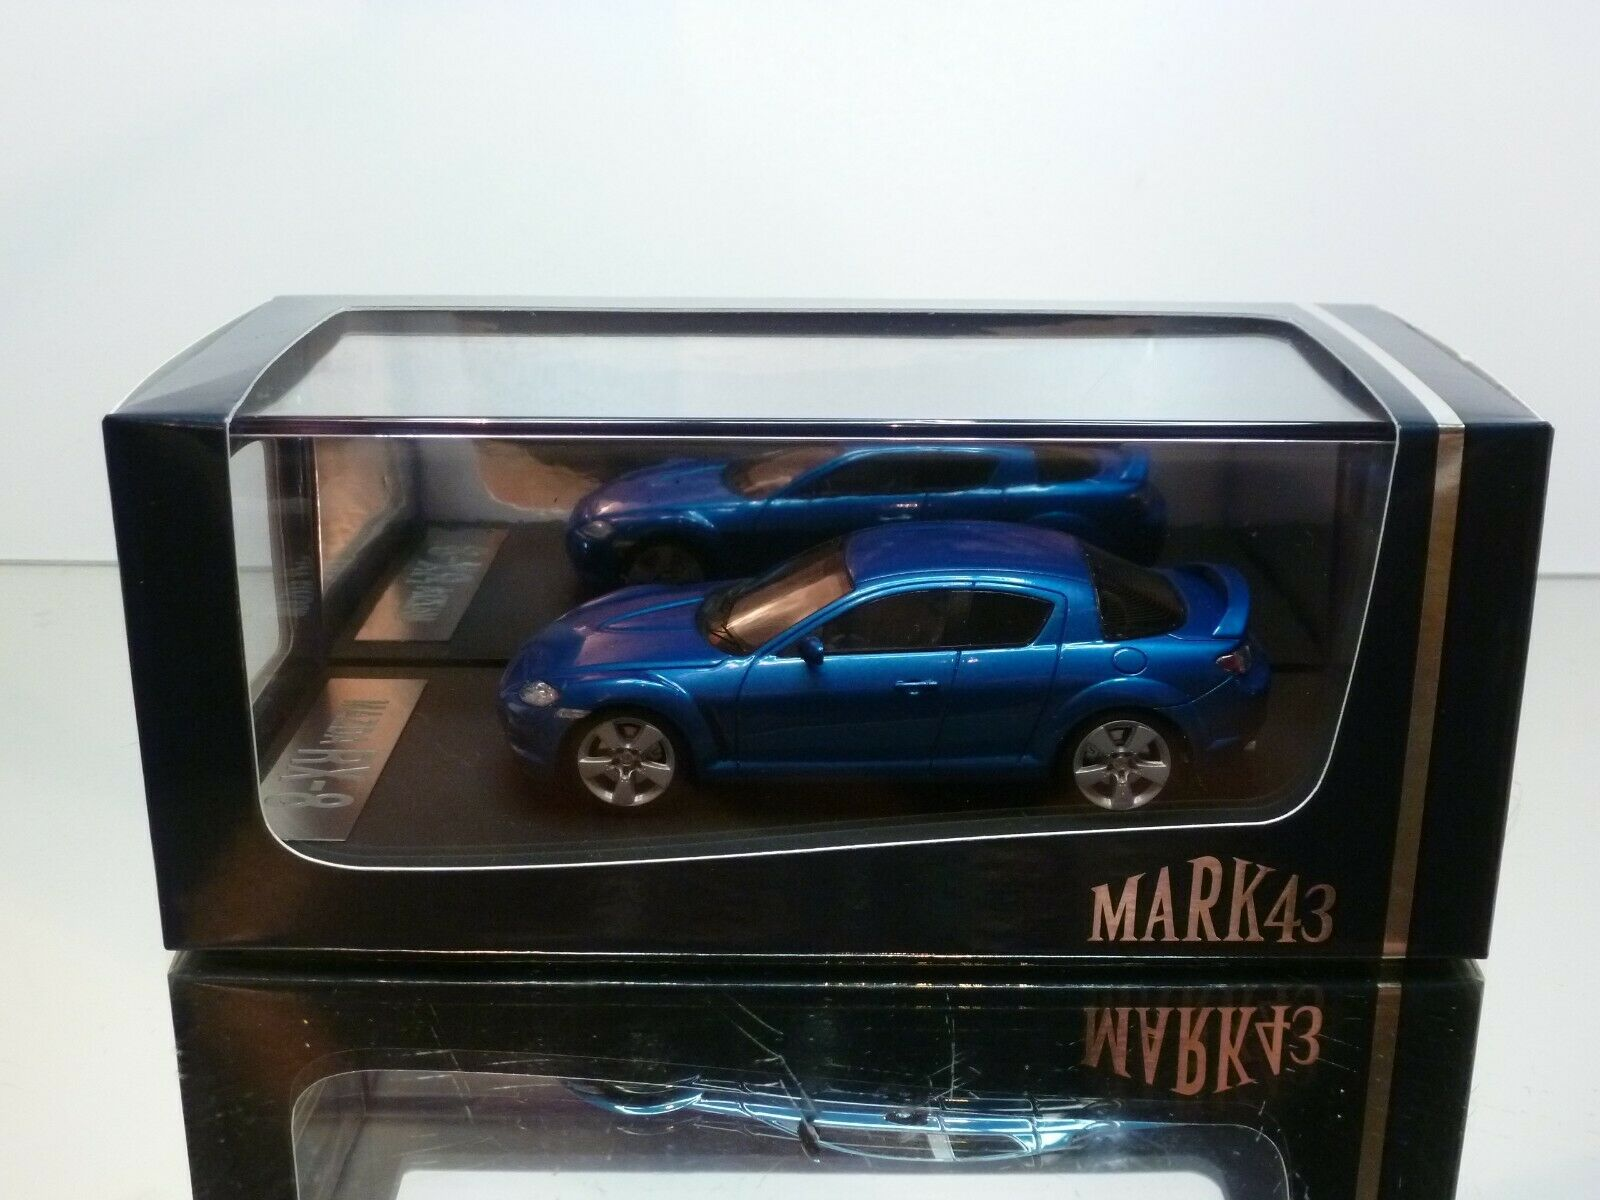 MARK43 MAZDA RX-8 TYPE S - blueE METALLIC 1 43 - VERY GOOD CONDITION IN BOX